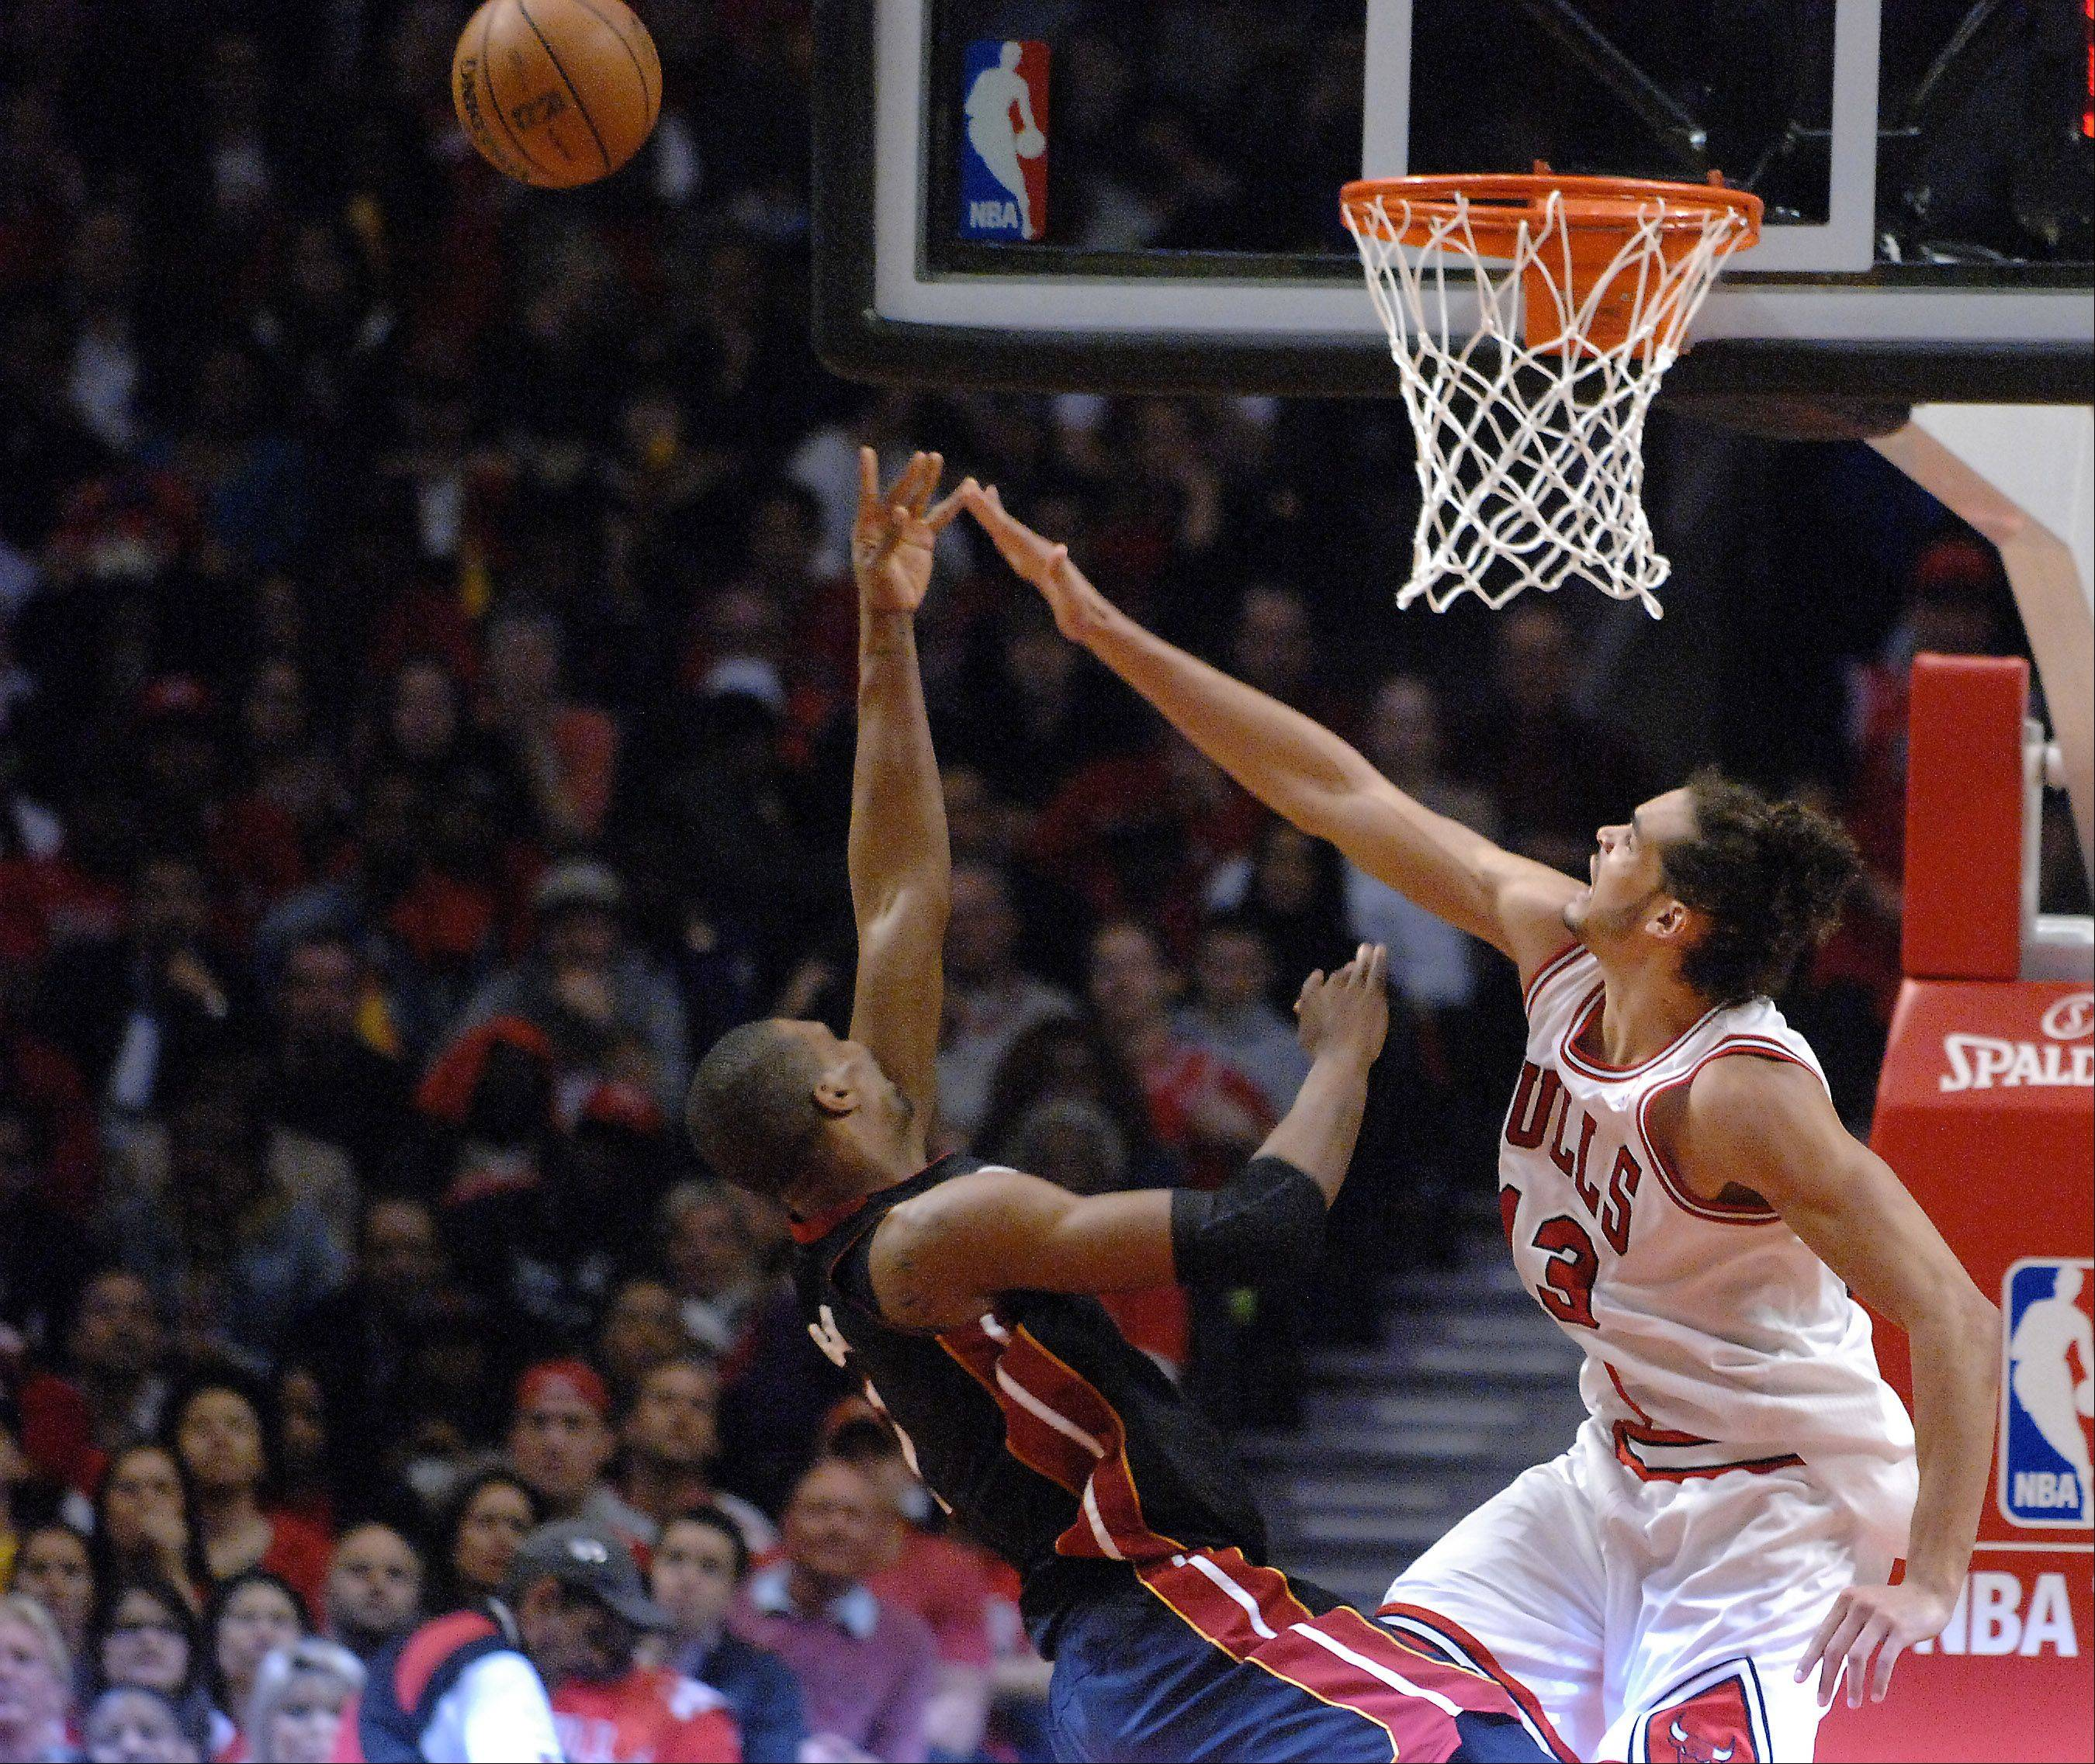 Chicago Bulls center Joakim Noah (13) blocks a shot by Miami Heat center Chris Bosh (1) during game 3 of the NBA Eastern Conference semifinals at the United Center in Chicago Friday.